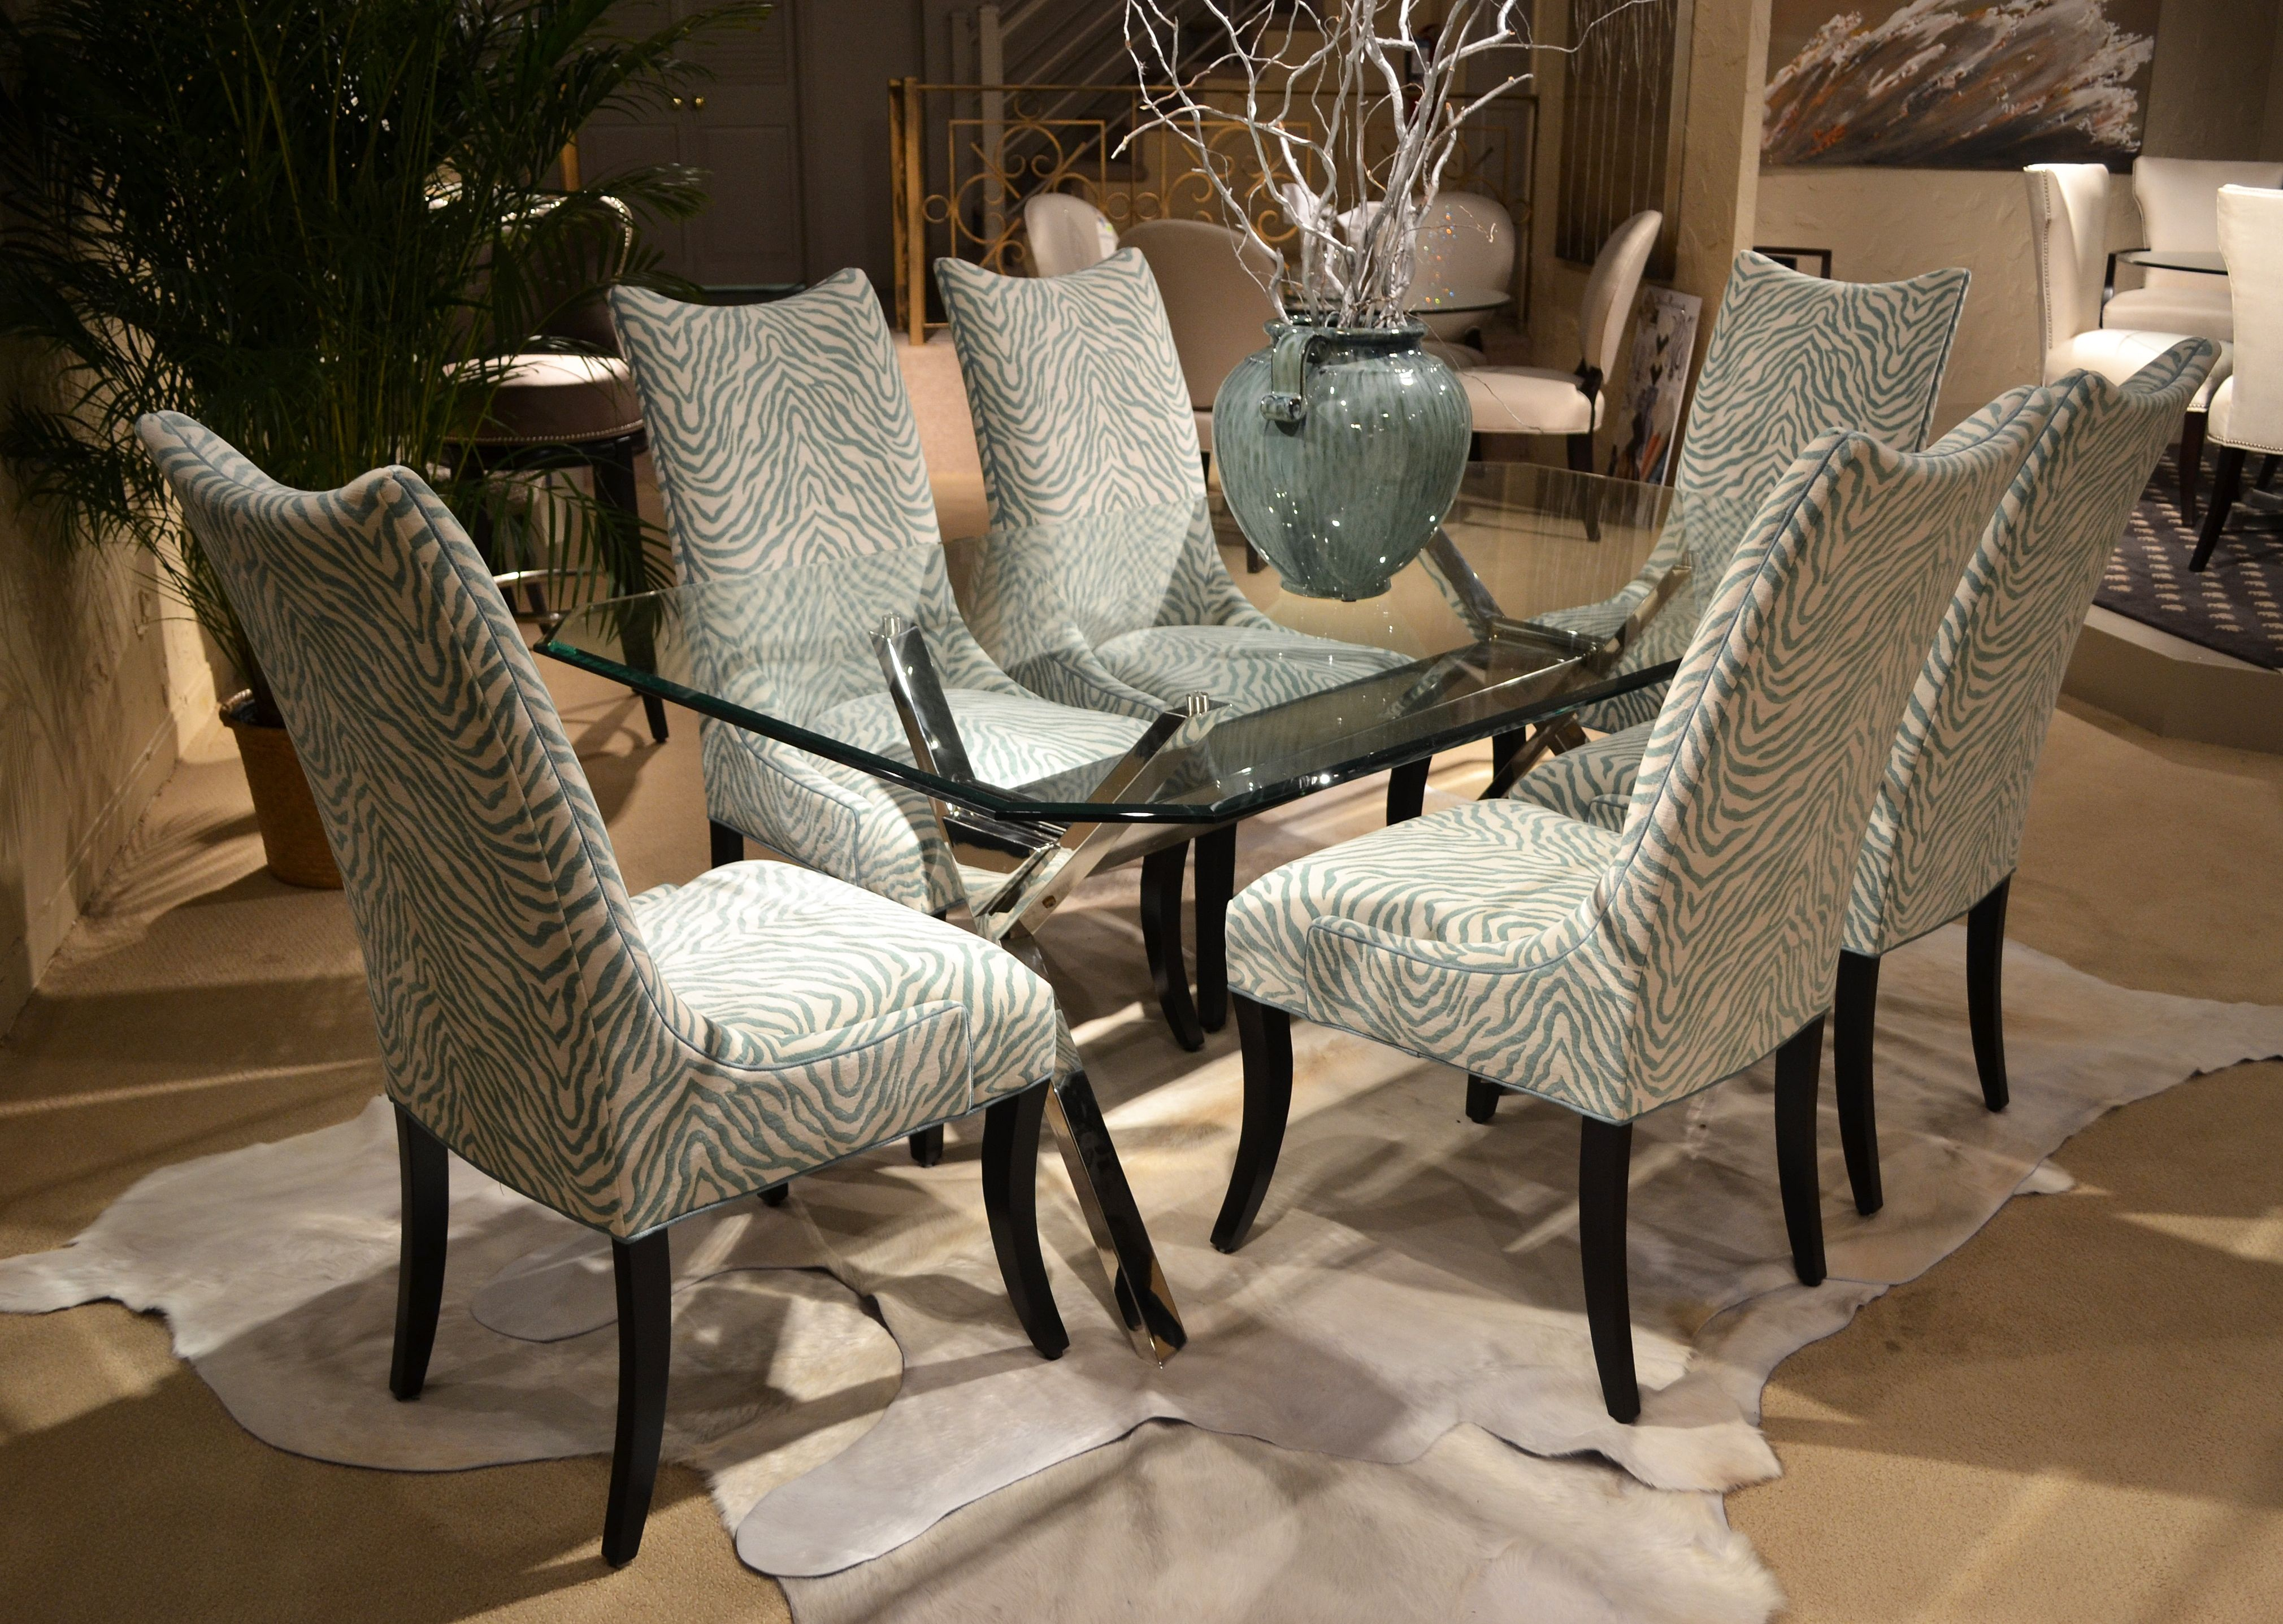 Dining chair set in turquoise and cream zebra teal